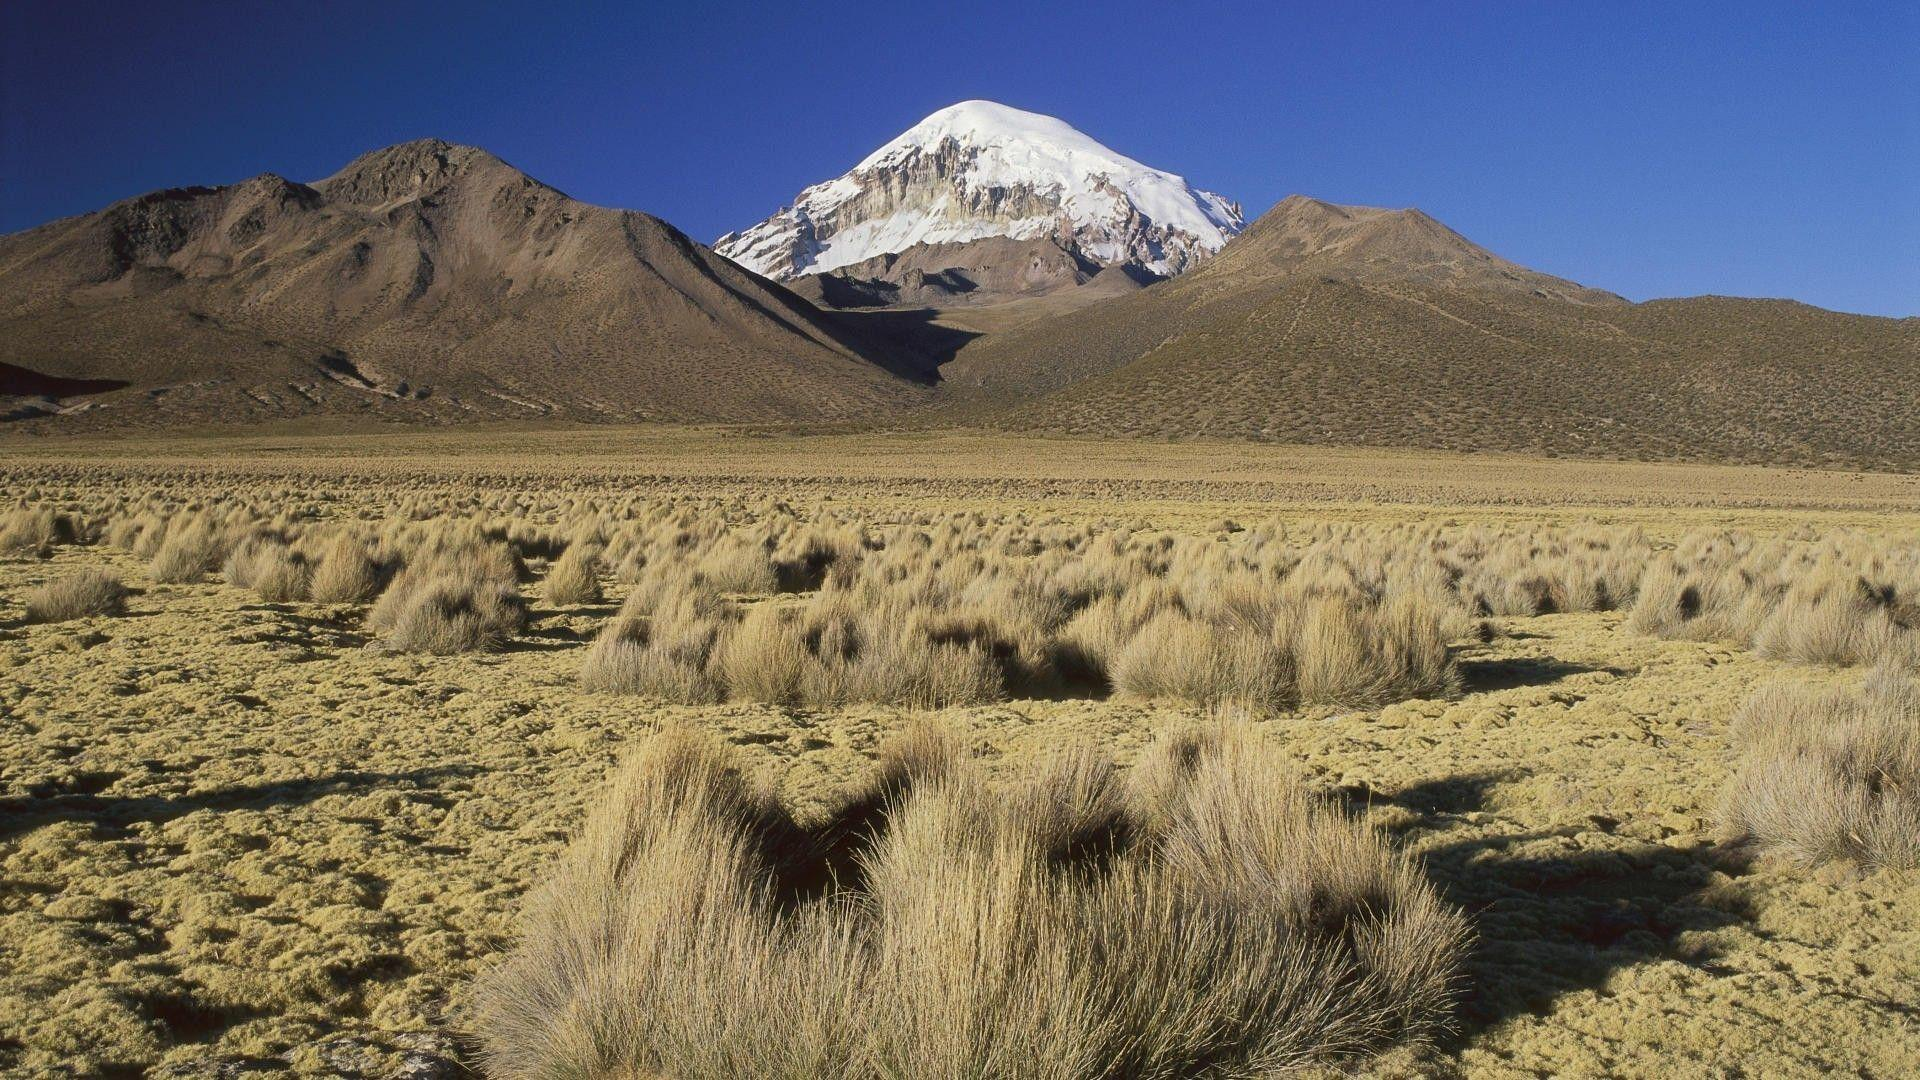 Harsh desert landscape in Bolivia wallpapers and image